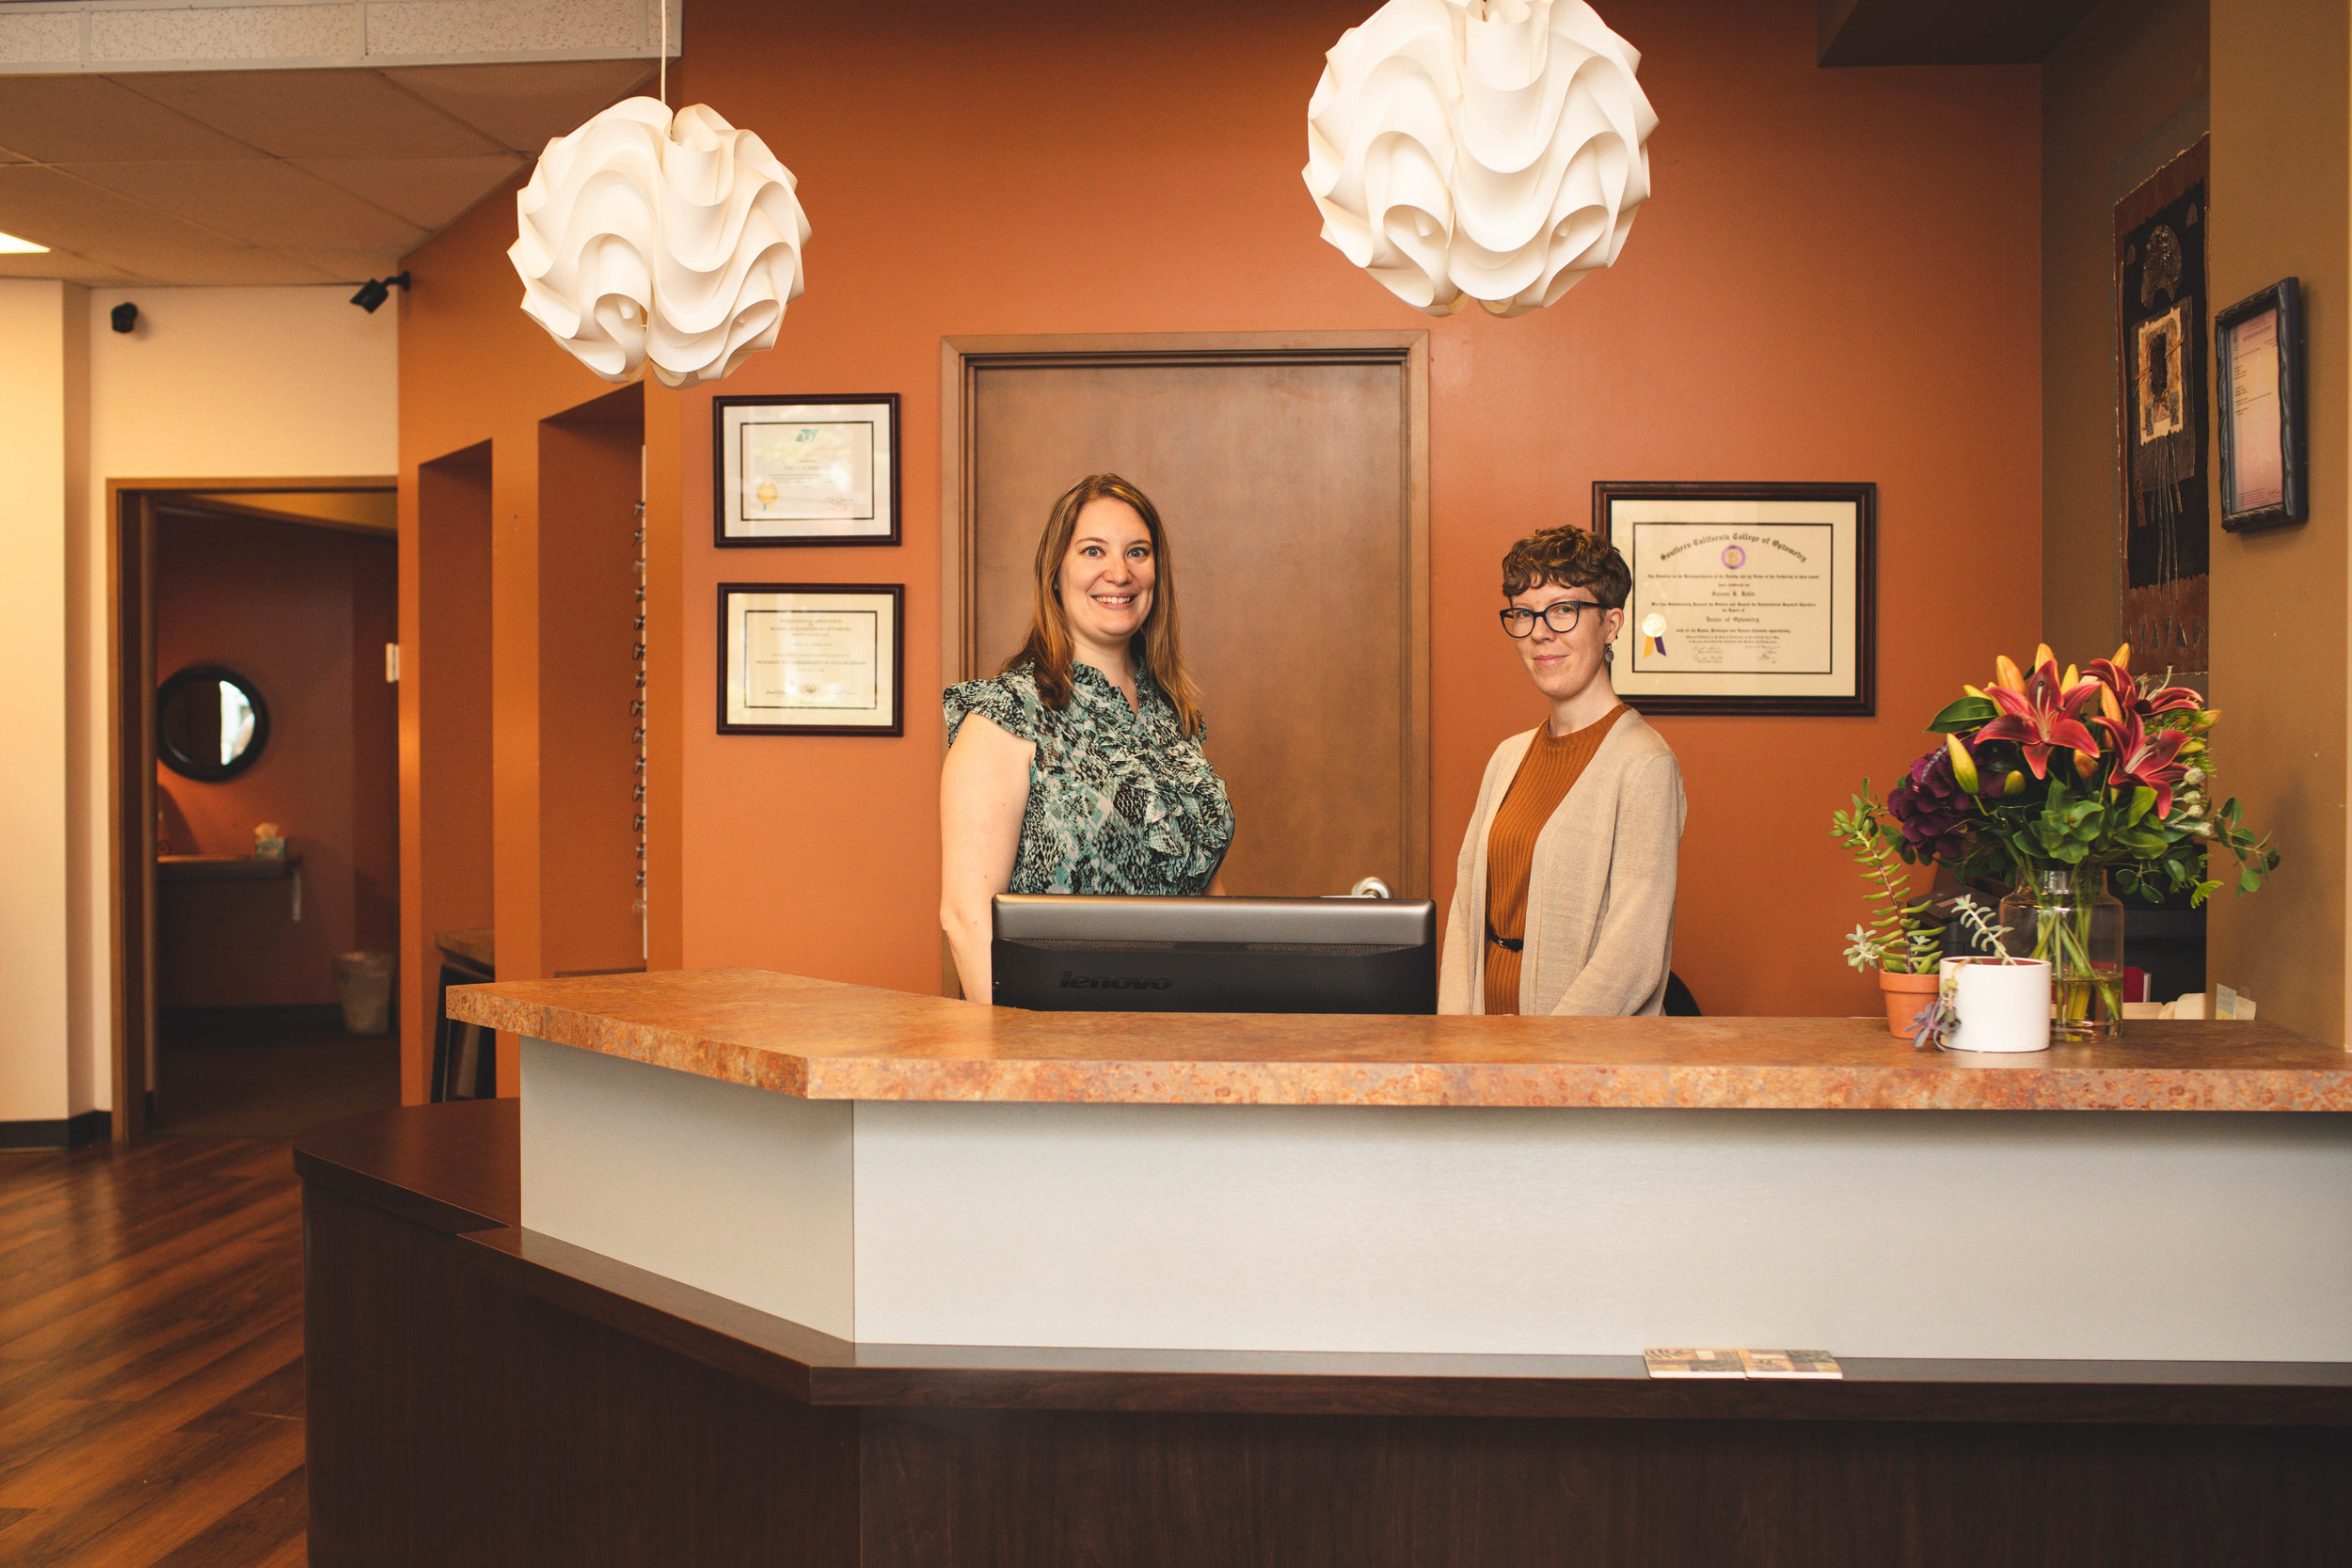 We want your appointment to be as stress-free as possible! - Our staff will do everything we can to make sure your experience is pleasant and convenient.